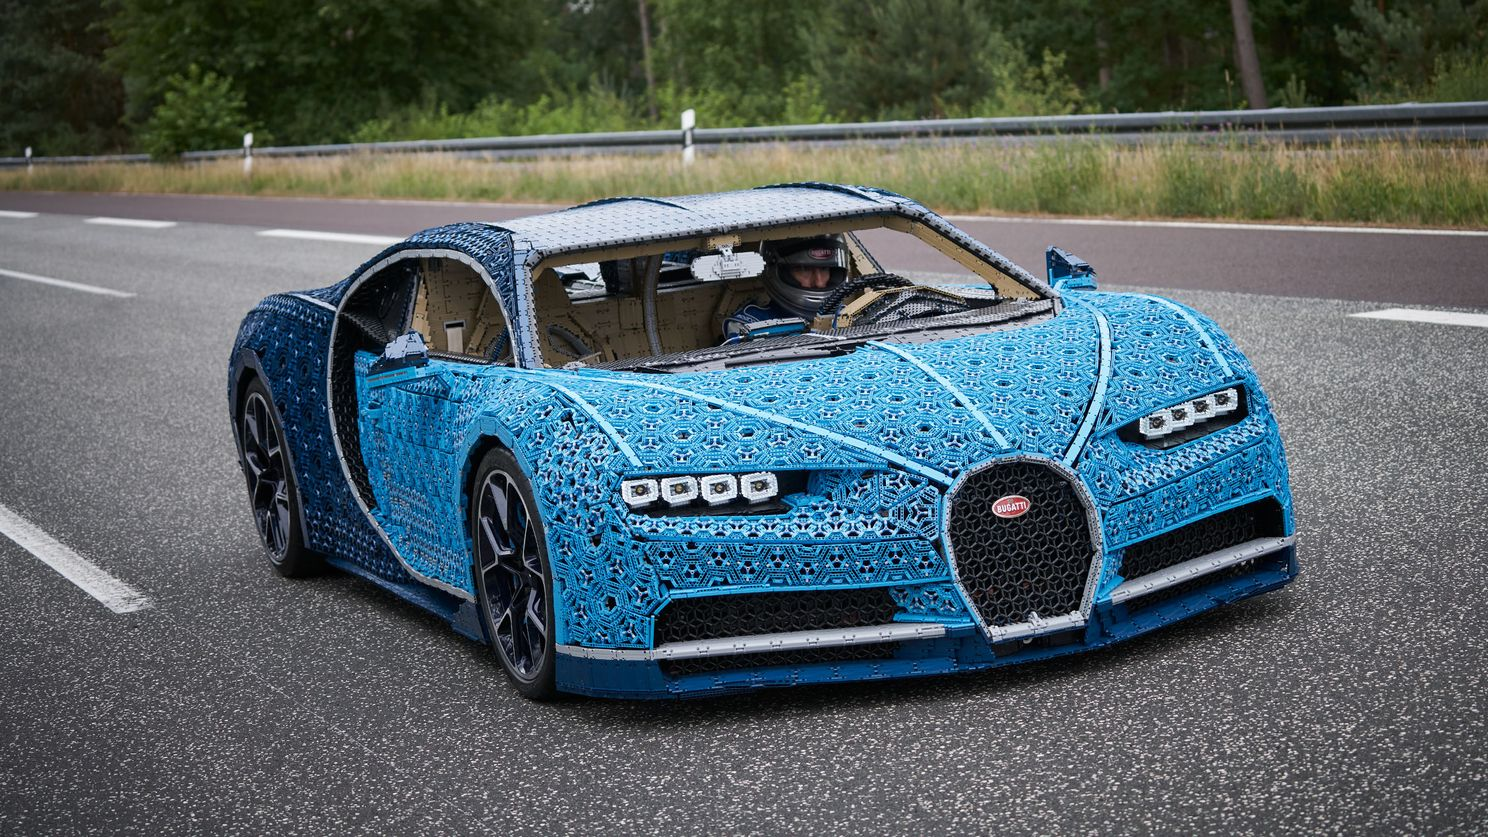 This Full-Size Bugatti Chiron is Made of LEGO and Drives! Well, at 18 mph. But Still!